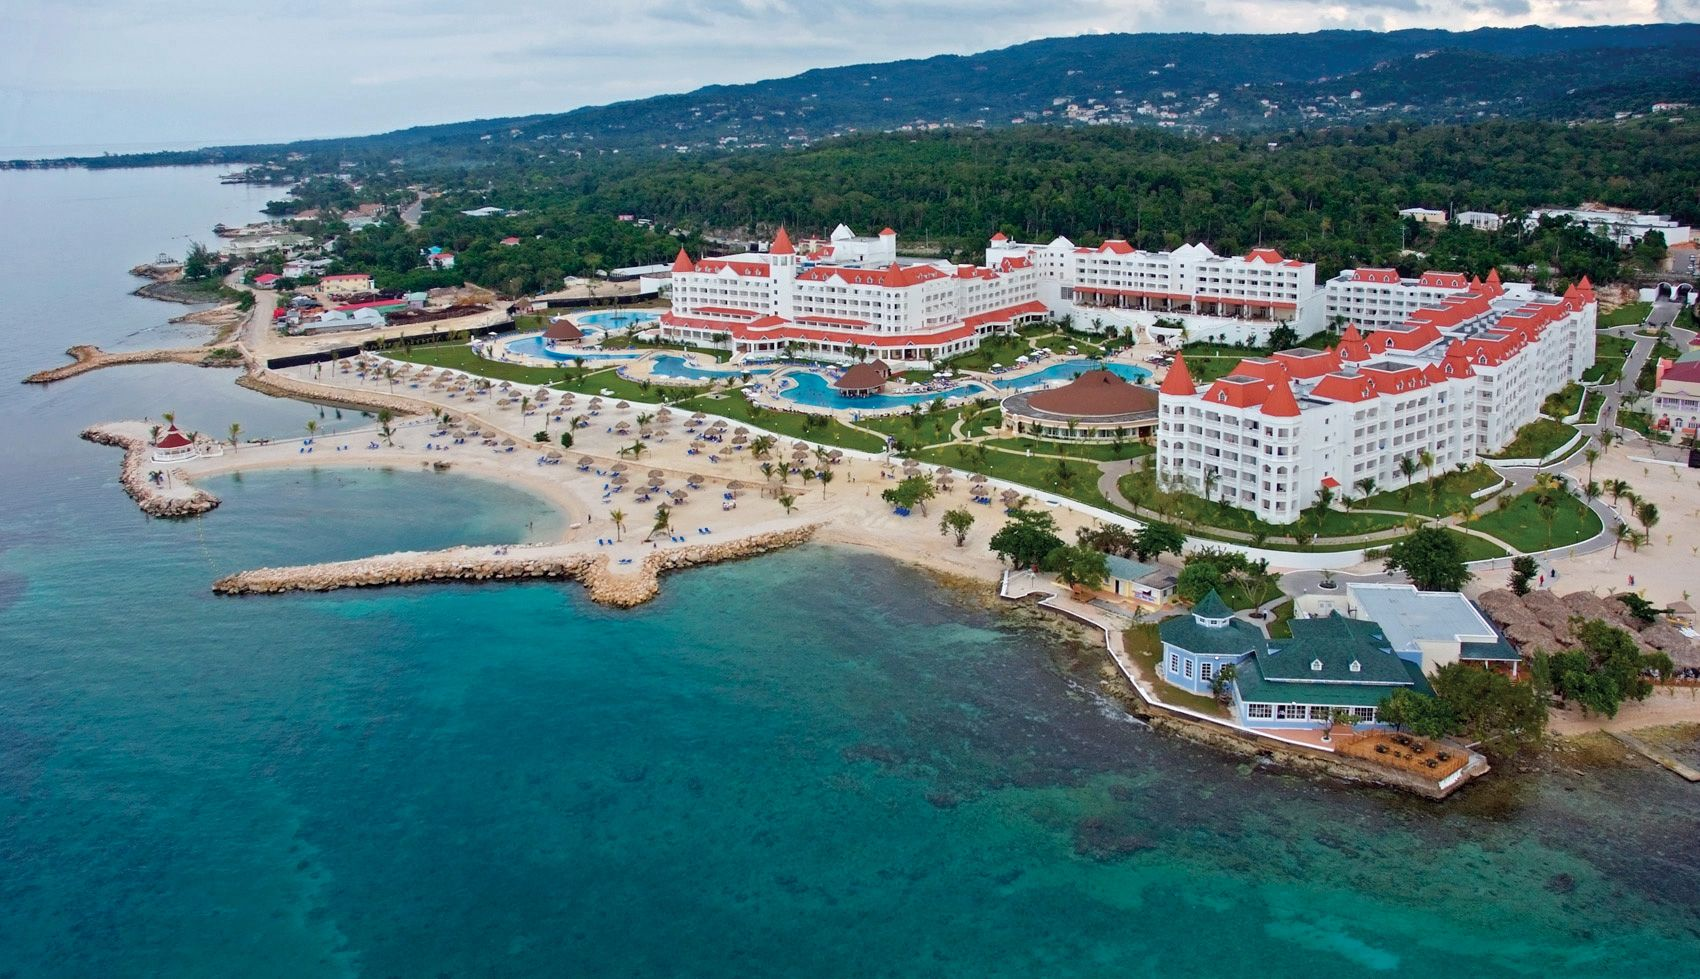 Grand bahia principe jamaica all inclusive 4 star only for All inclusive fishing vacations usa